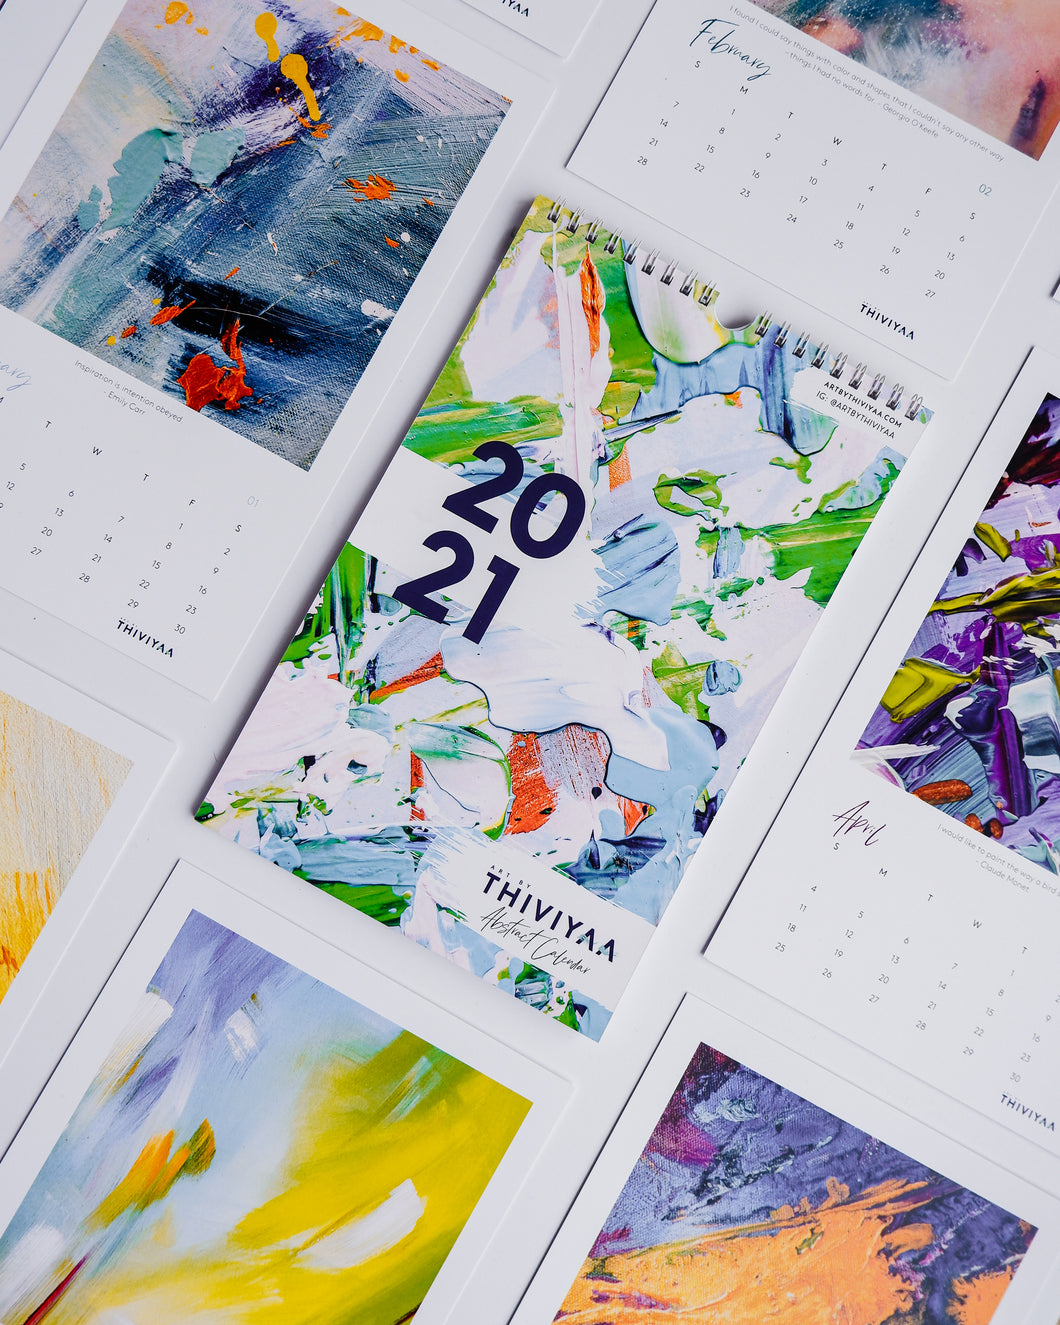 2021 Art Calendar | Art By Thiviyaa Abstract Calendar | Holiday Gift | Office Art Prints